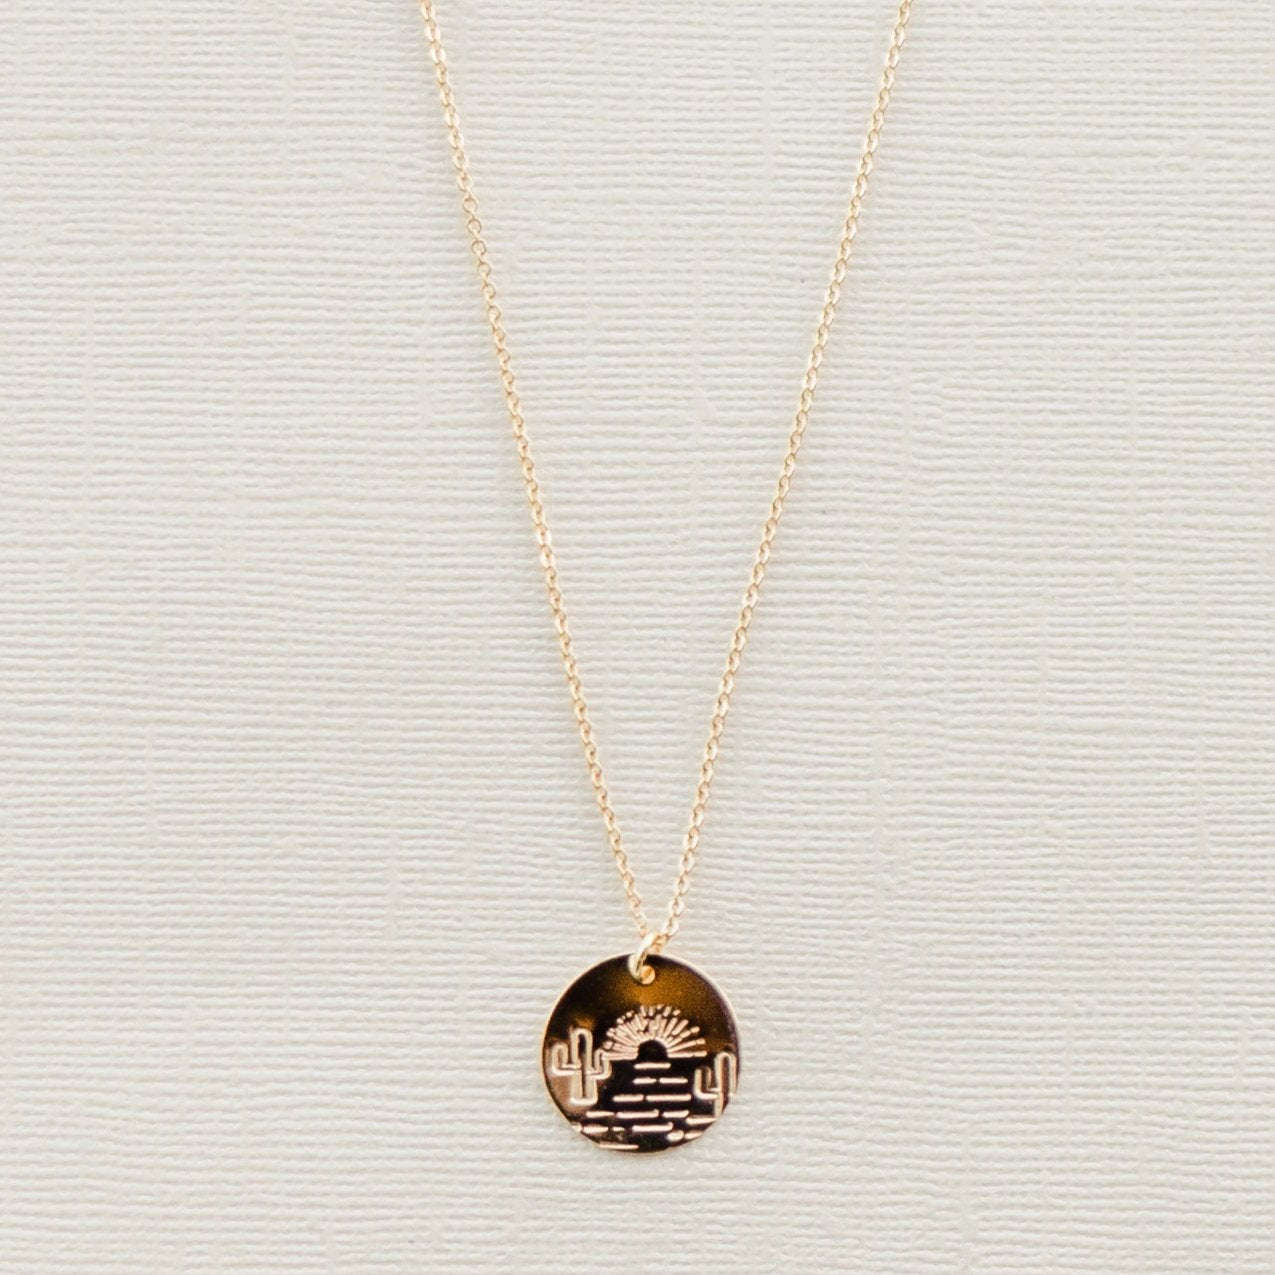 Single Pendant Necklace - Shop Back Home